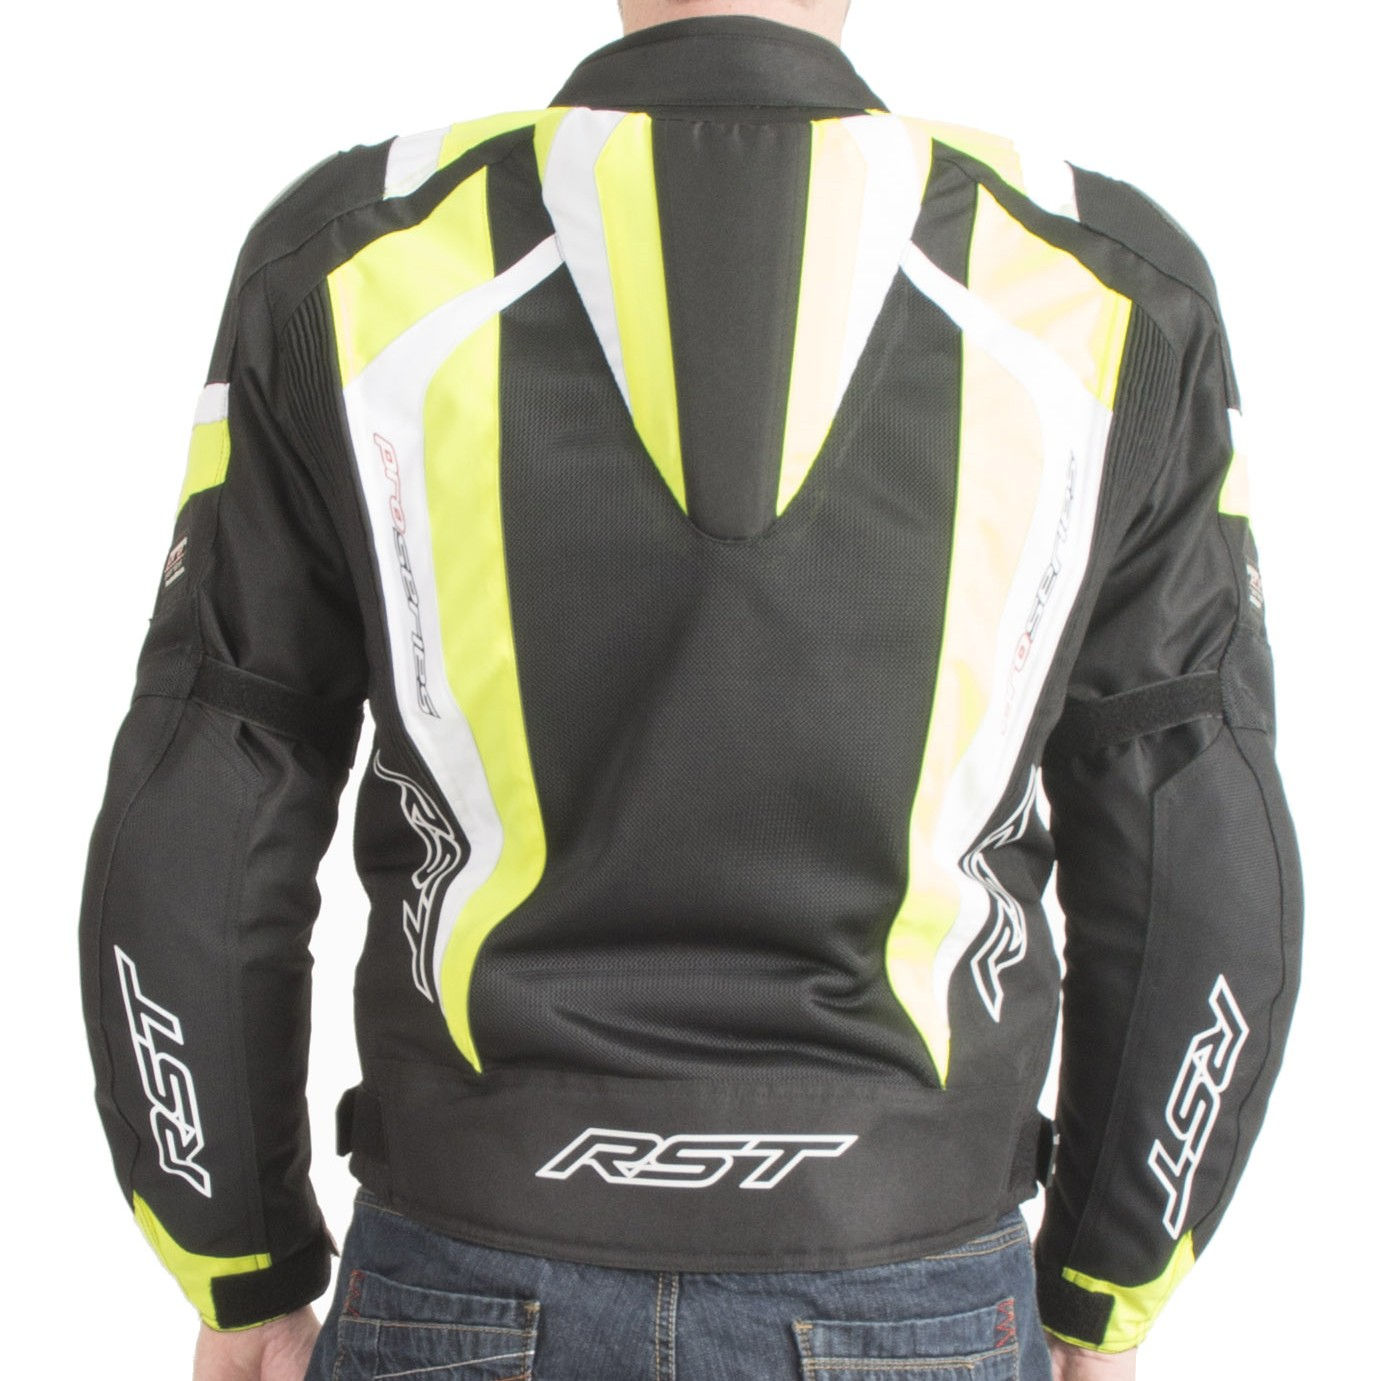 rst_ps_sport_vented_1172308_f_yel_2